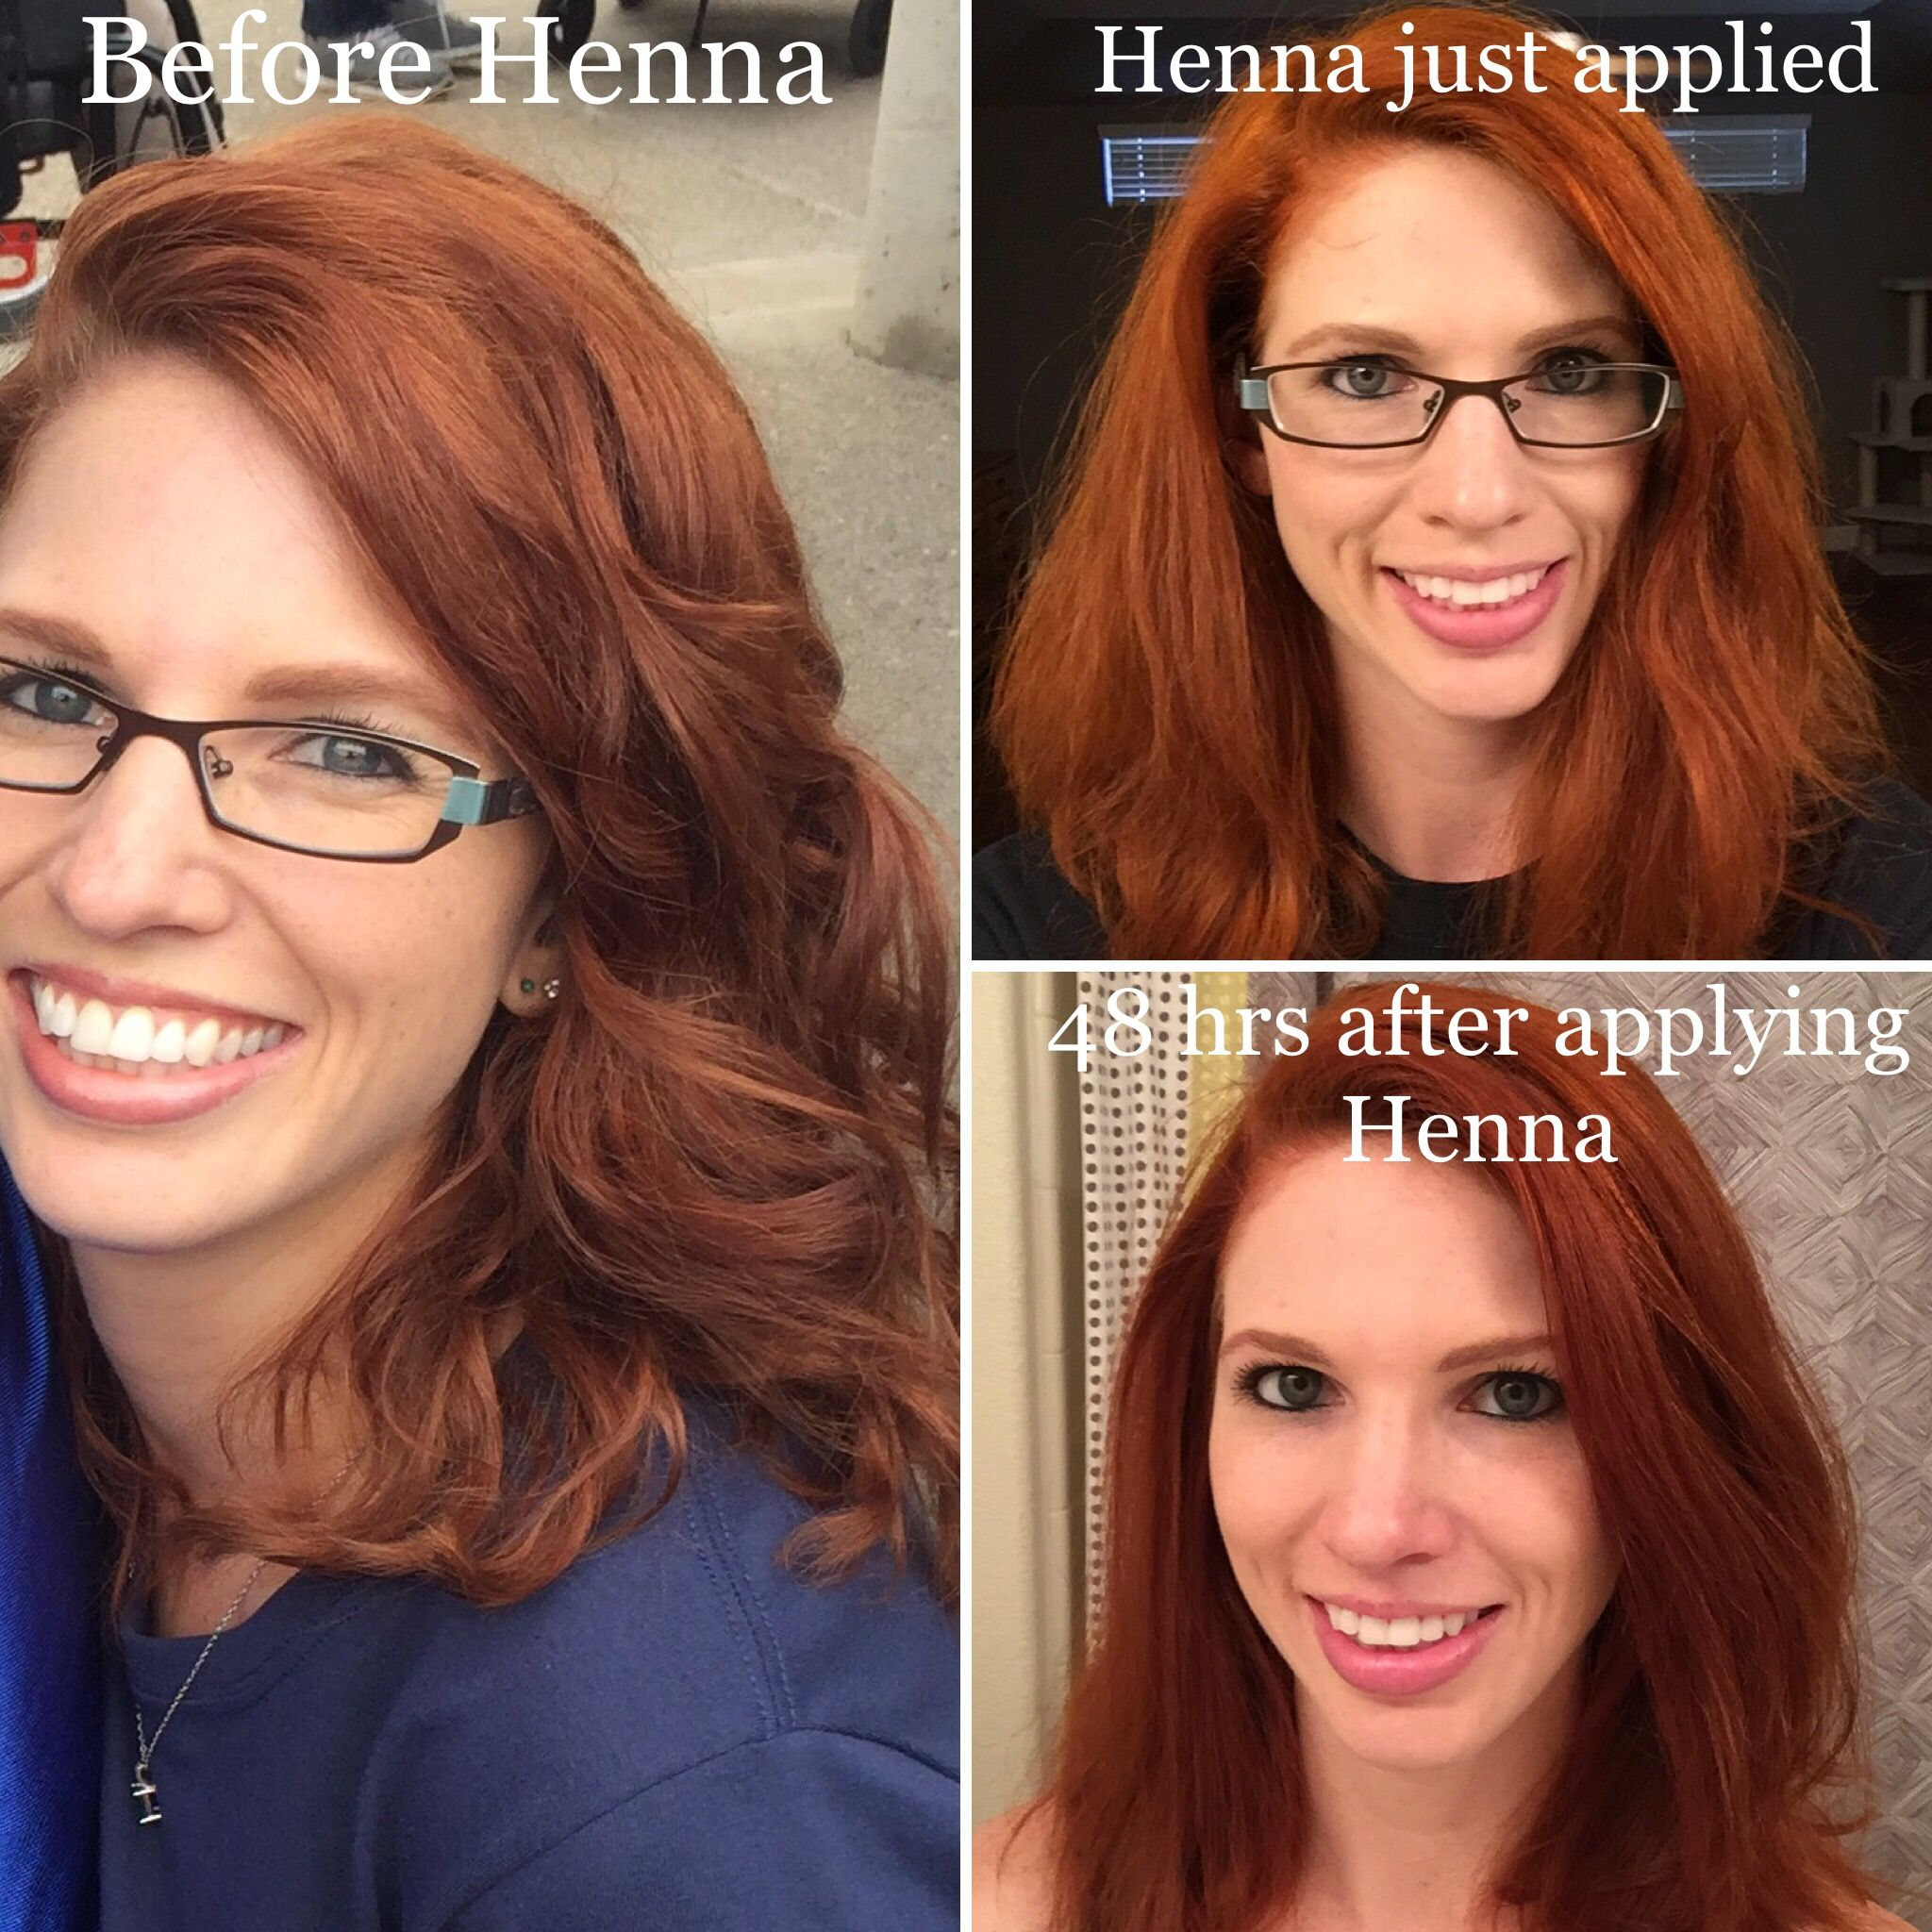 Henna hair: before and after pics  Plus 48 hours after to